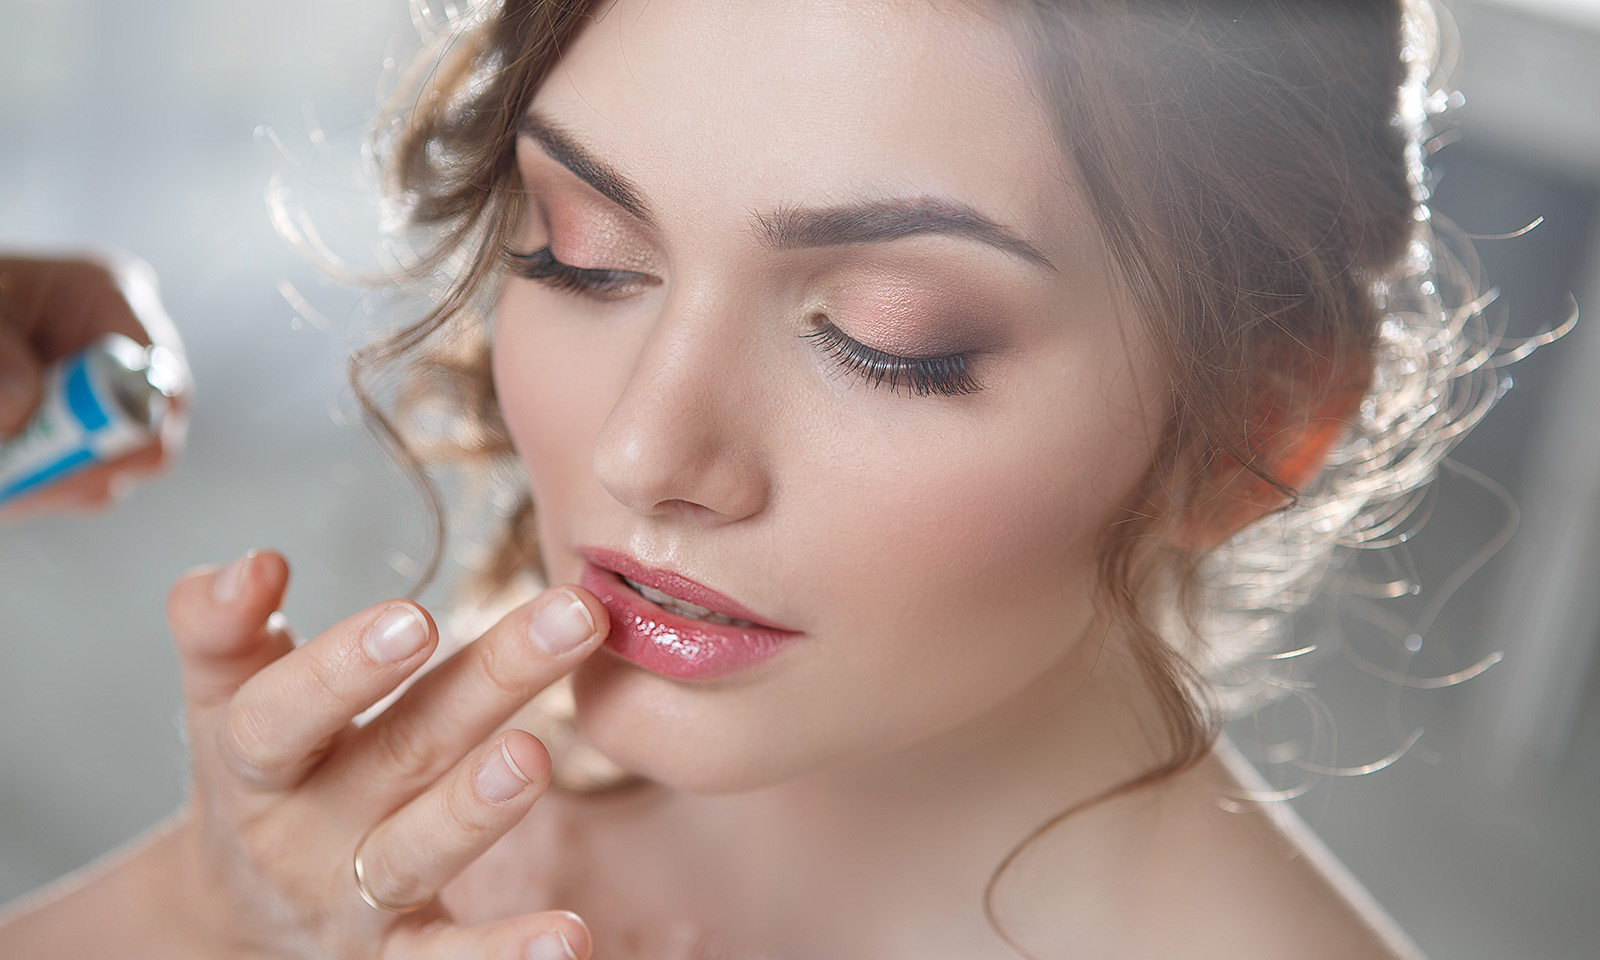 no-curling-wand-other-ways-to-get-girls-girl-with-curls-having-lipgloss-applied